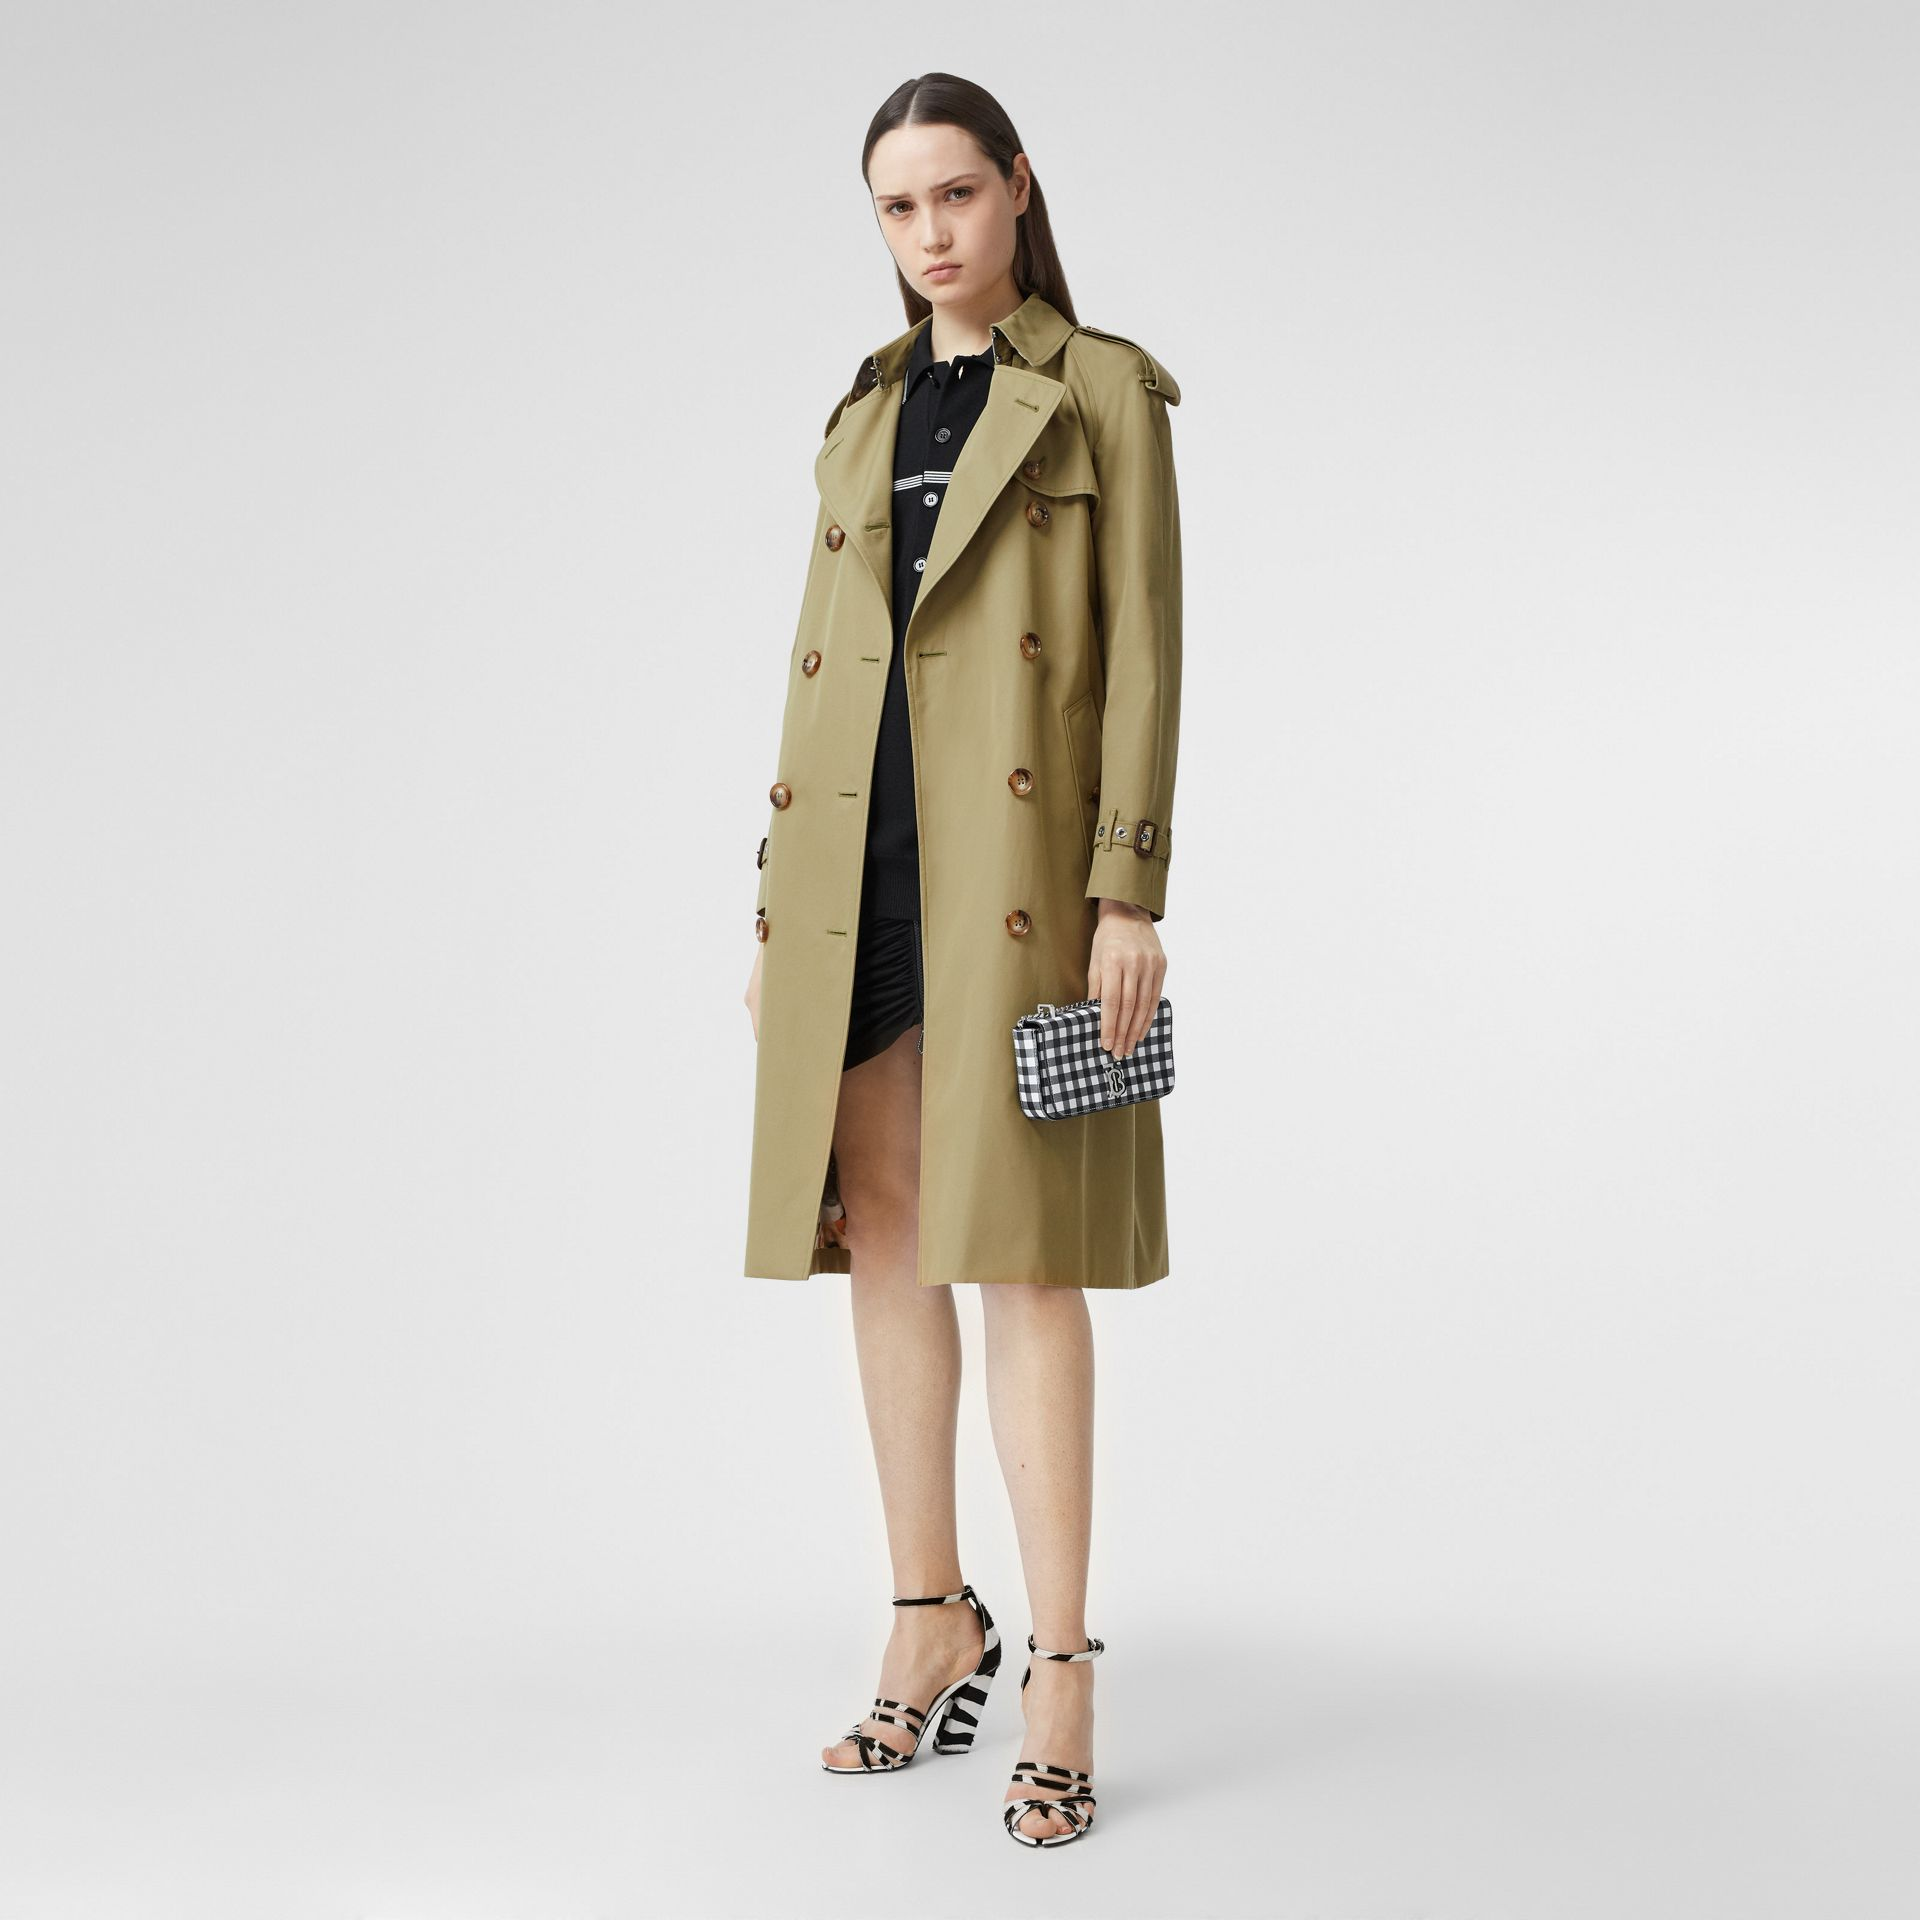 Animalia Print-lined Cotton Gabardine Trench Coat in Rich Olive - Women | Burberry Canada - gallery image 6